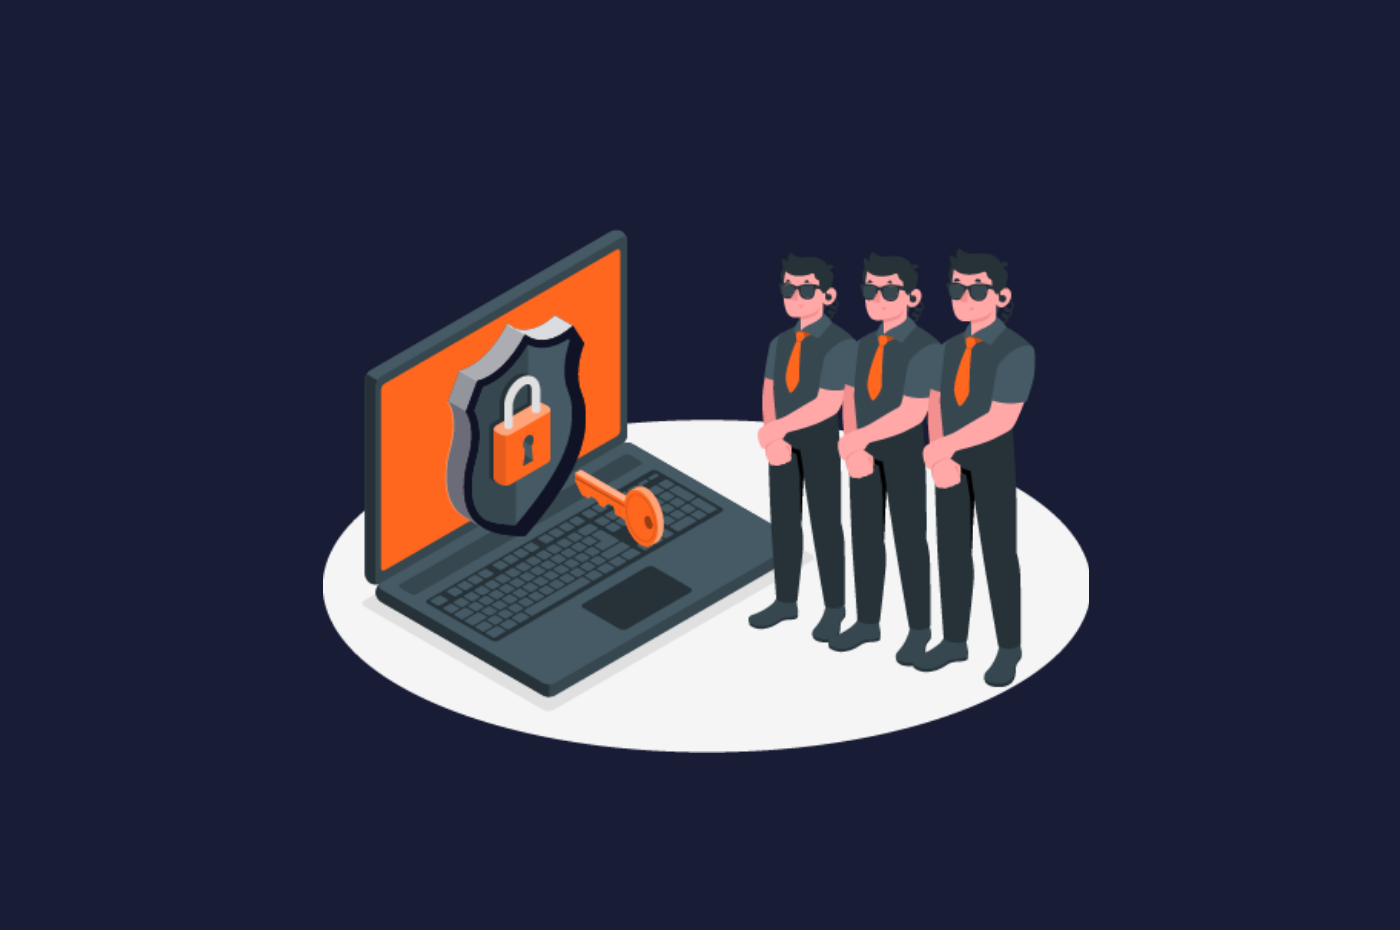 Row of men standing guard in front of a computer with a lock and key in front of the computer. Representing an illustrated version of a human firewall.